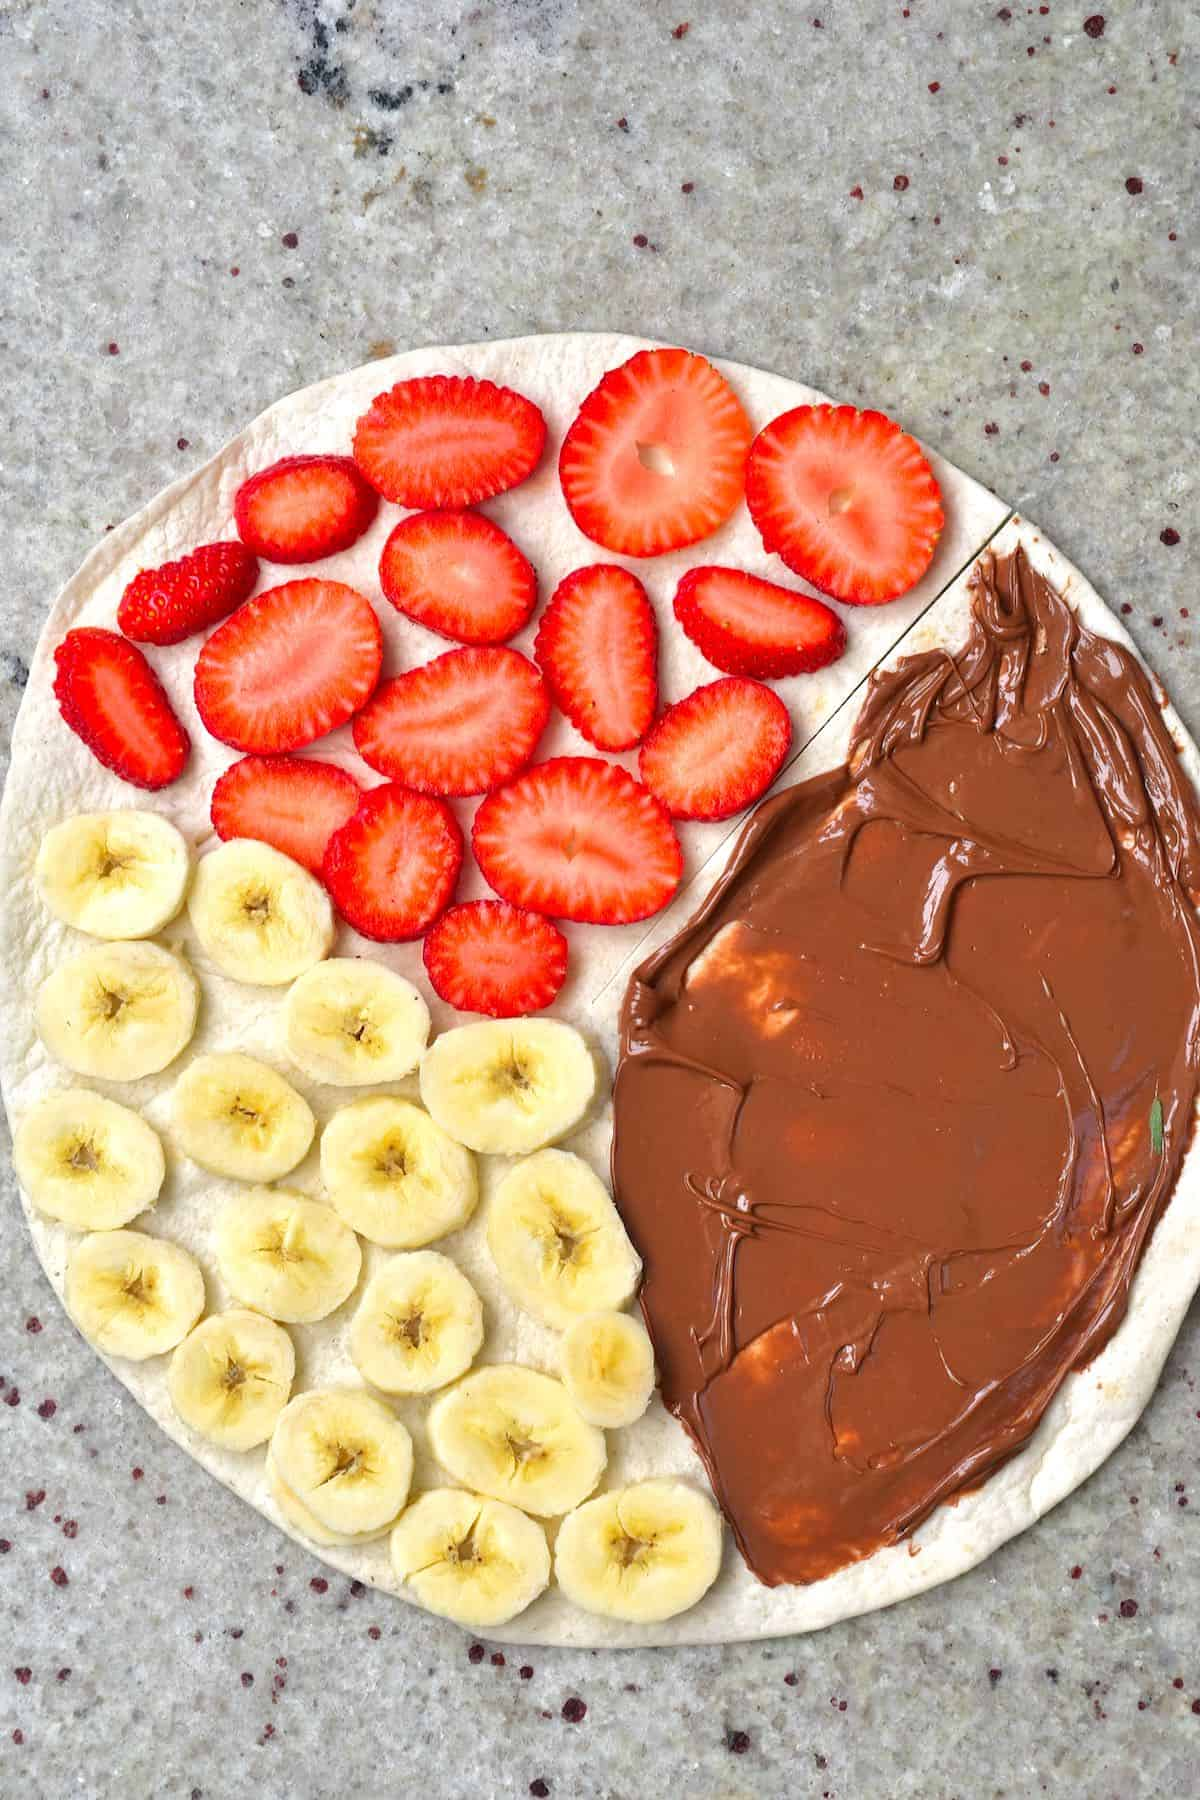 Tortilla topped with nutella banana slices and strawberry slices